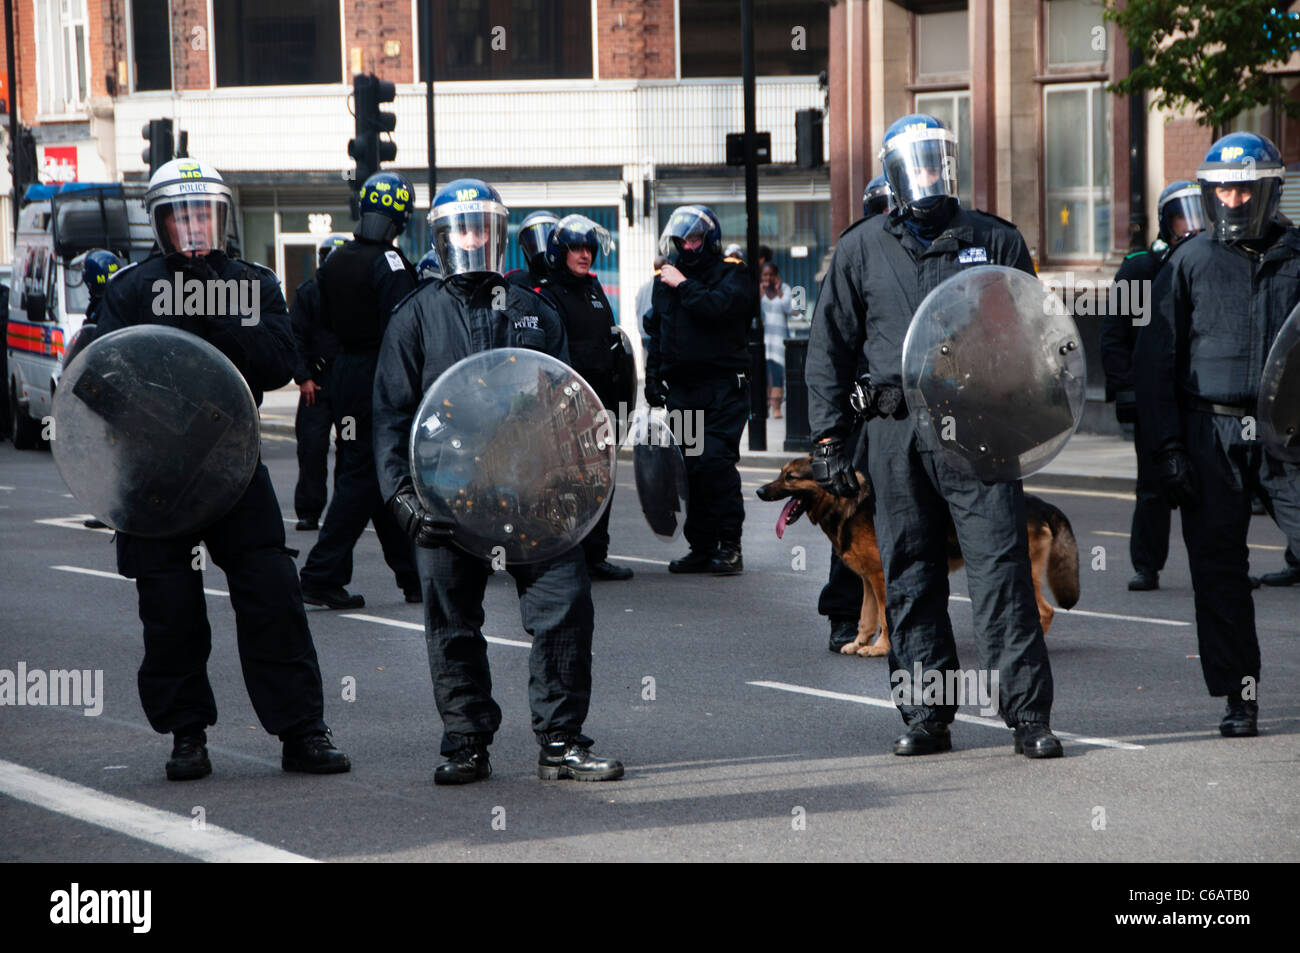 Riot police  with helmets and riot shields and an Alsatian dog on Mare street Hackney during the August 8th 2011 - Stock Image